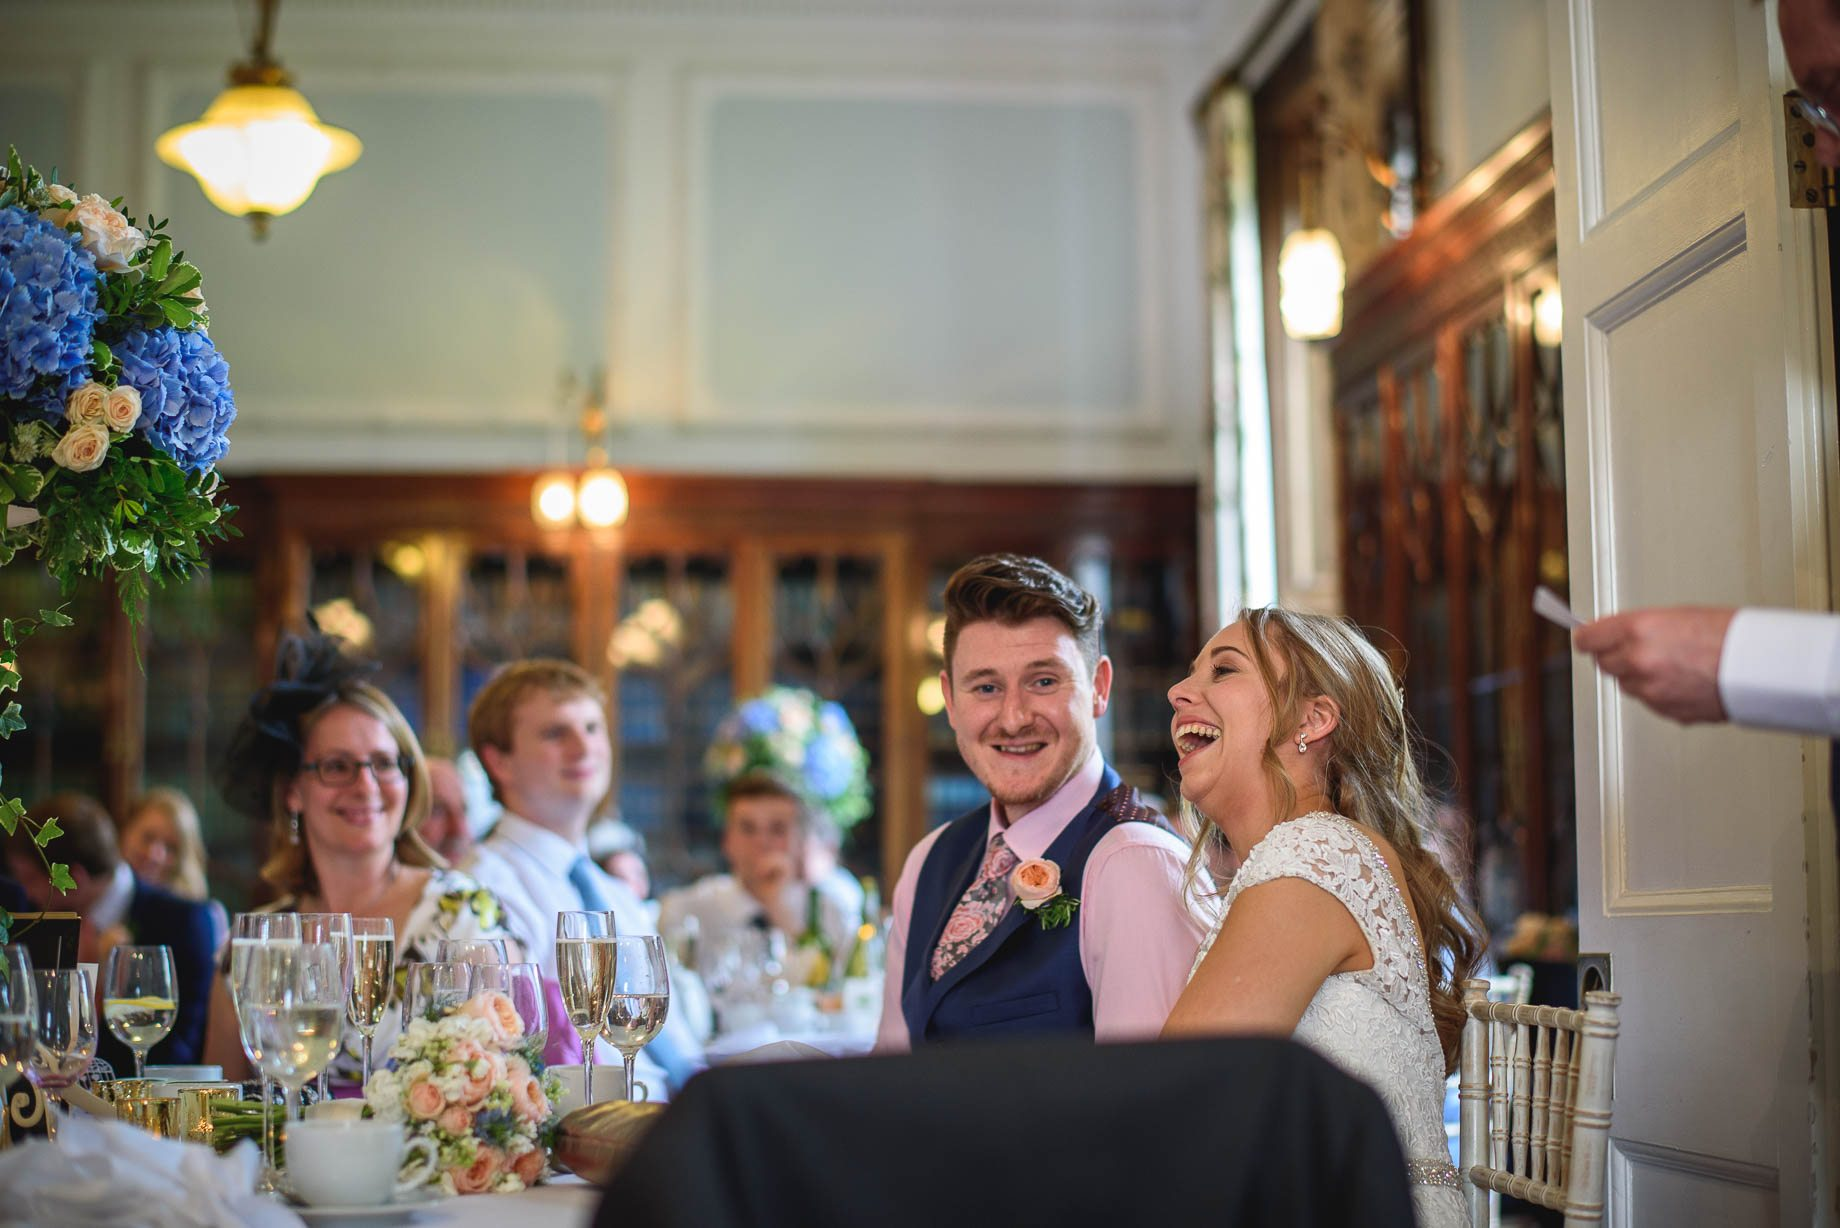 Hampshire wedding photography by Guy Collier - Emily and Tom (104 of 164)